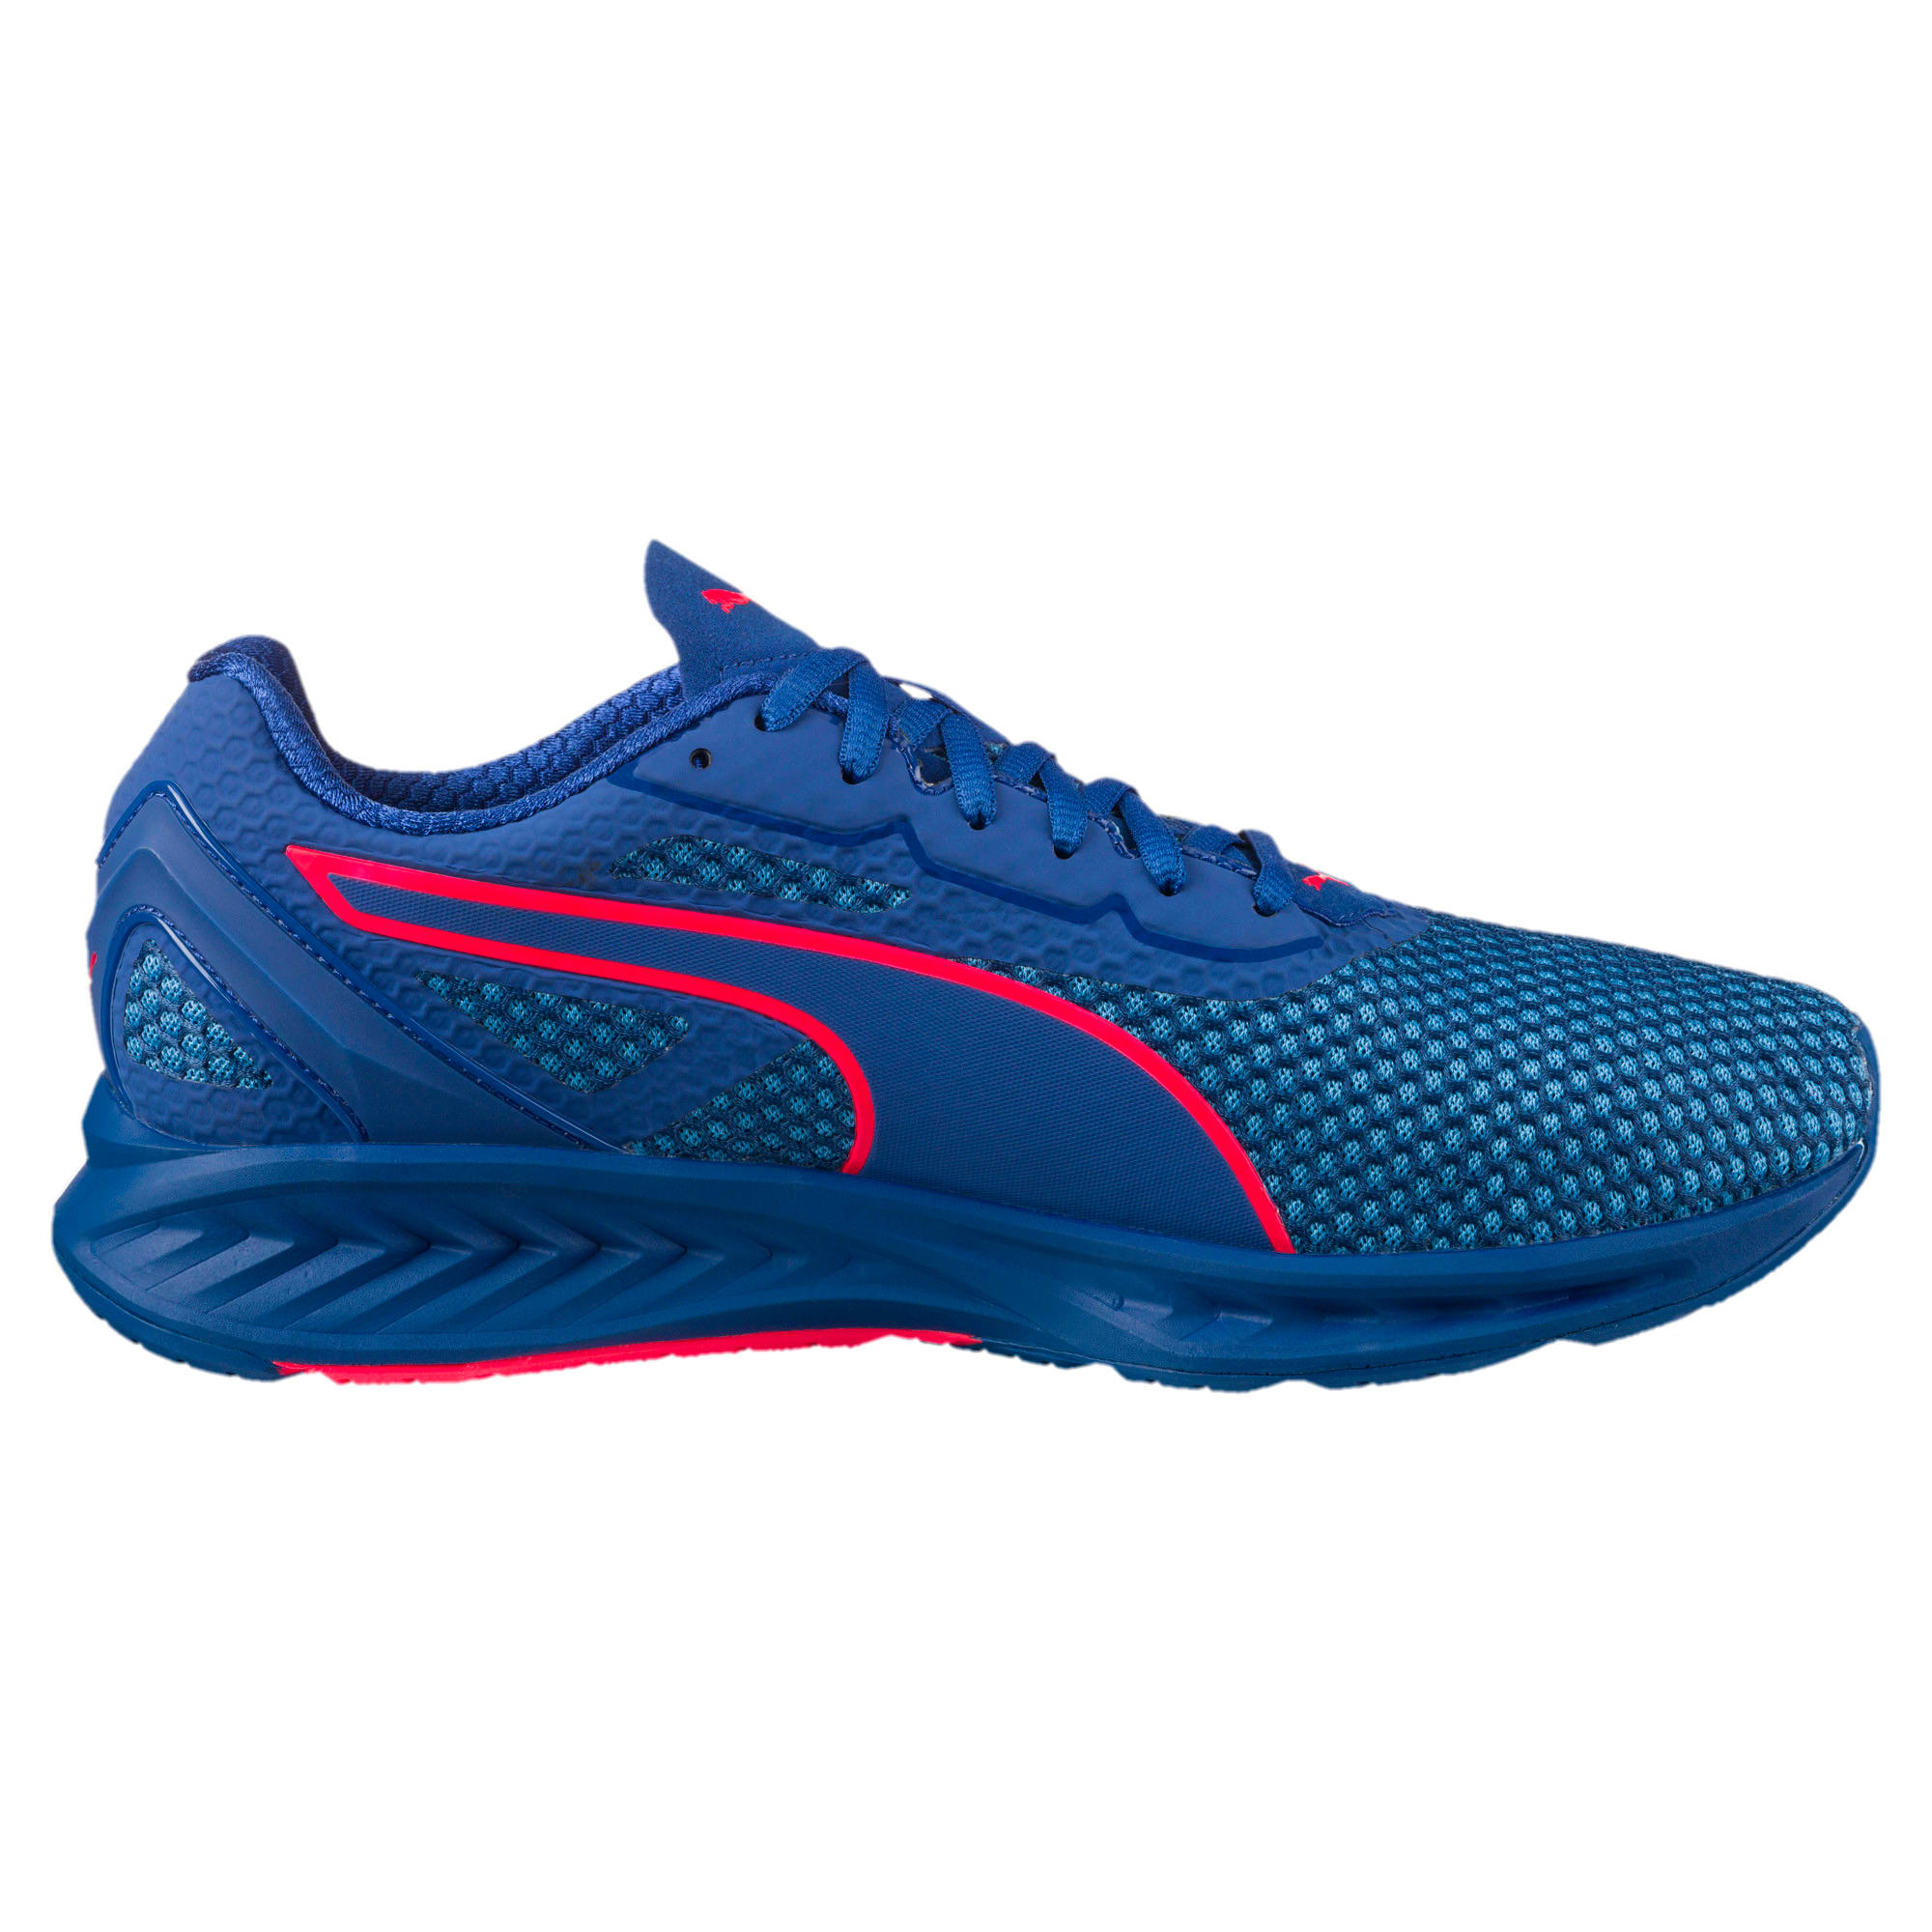 Thumbnail 5 of IGNITE 3 Men's Running Shoes, TRUEBLUE-BLUEDANUBE-Plasma, medium-IND